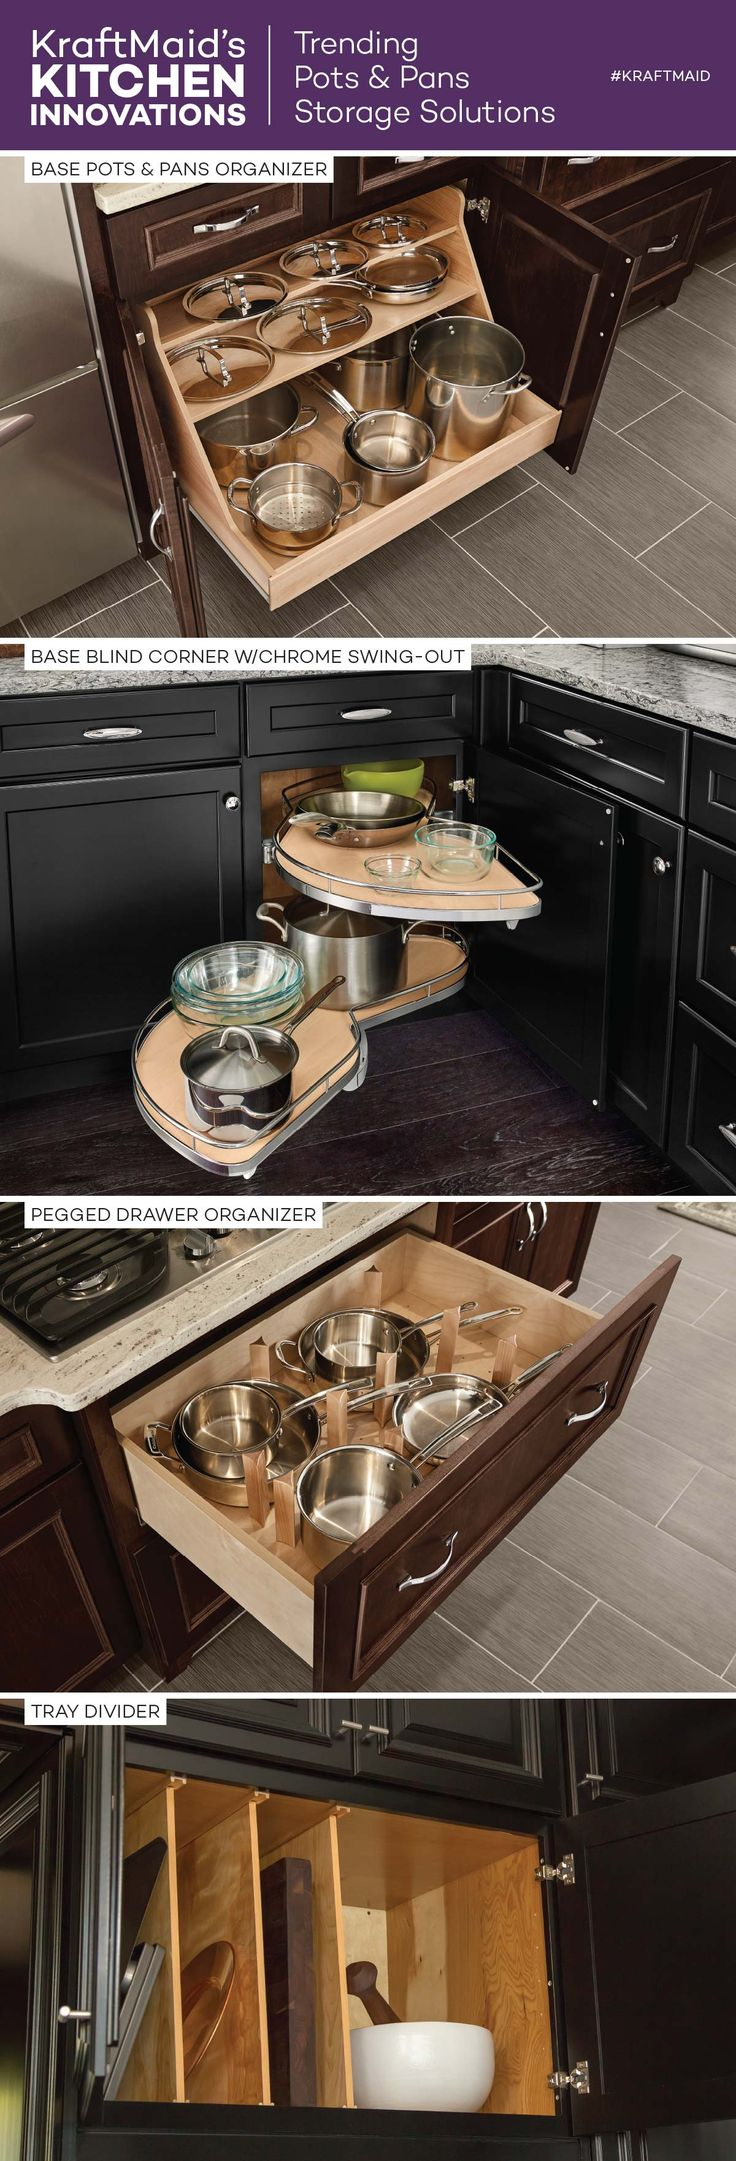 organize a small kitchen 9 best kraftmaid 174 kitchen innovations images on 3776